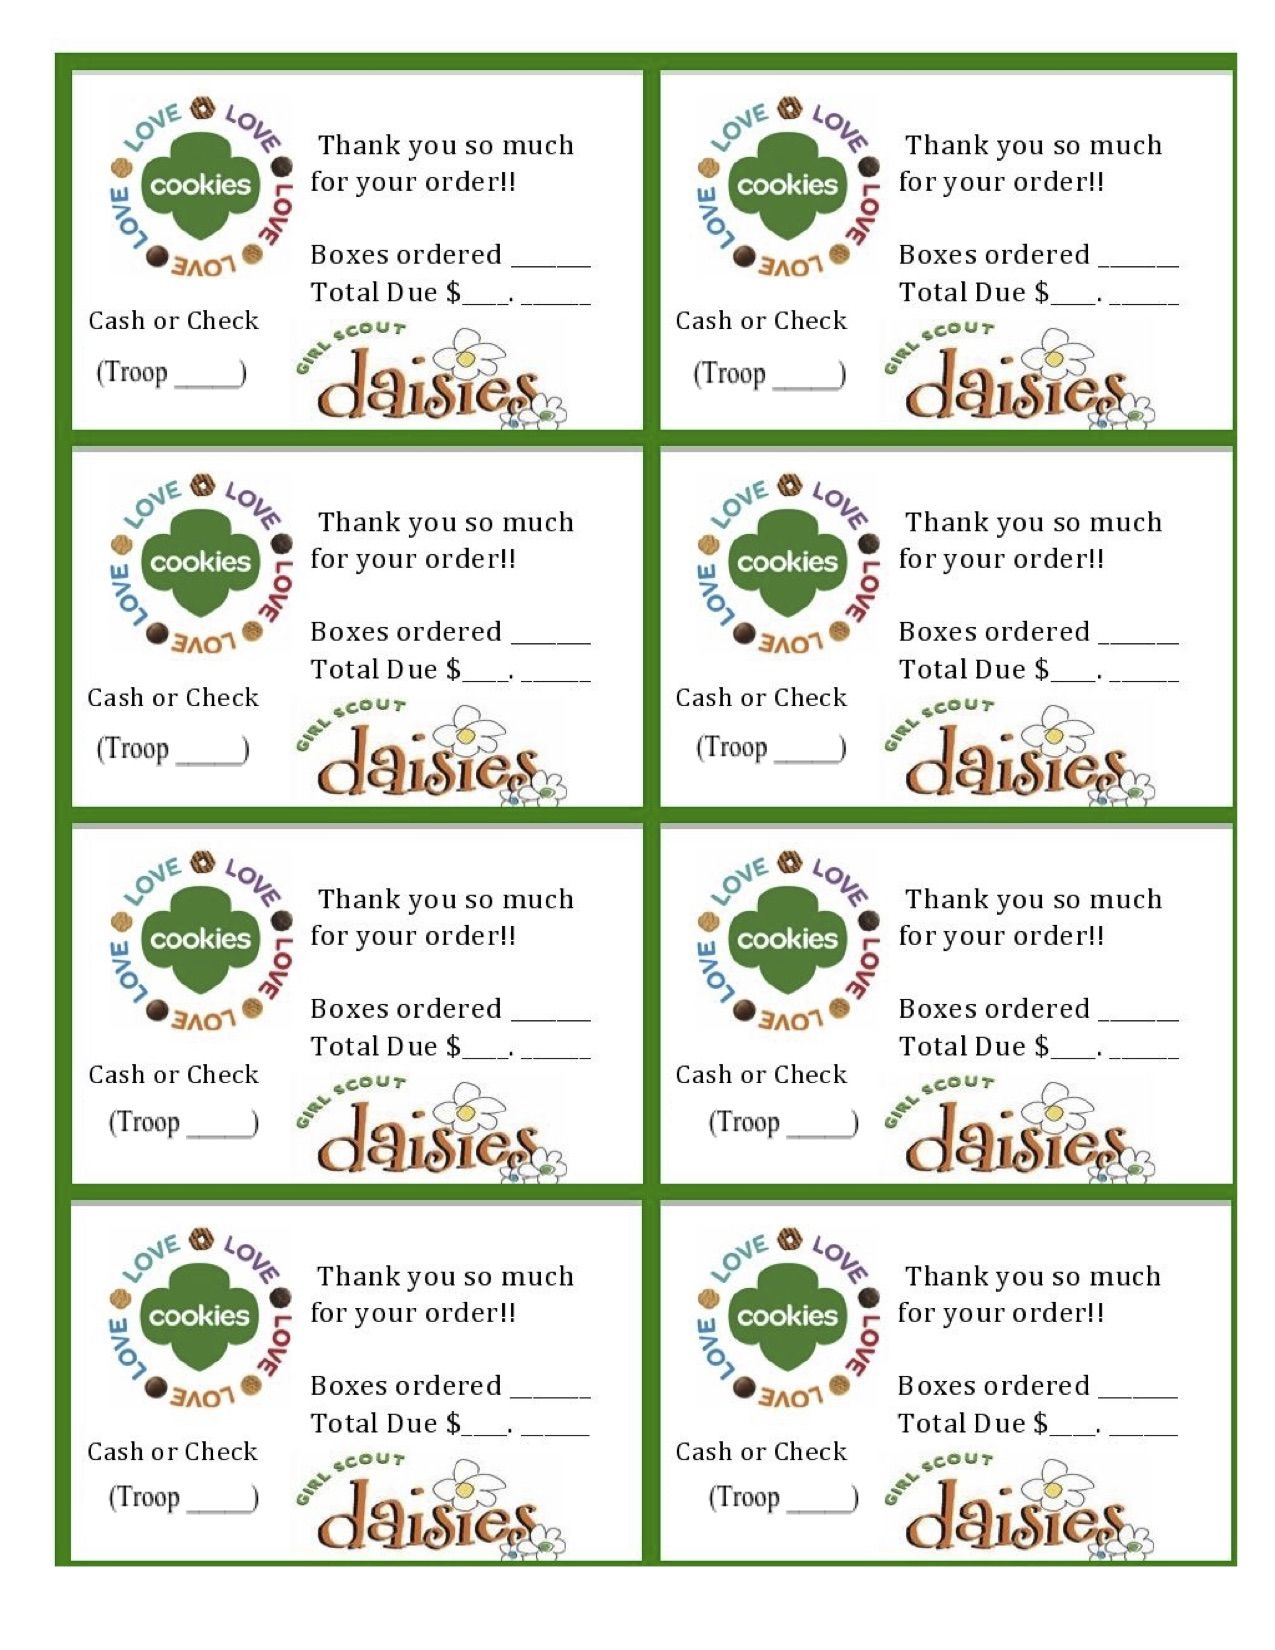 printable daisy girl scouts cookie sales invoice and thank